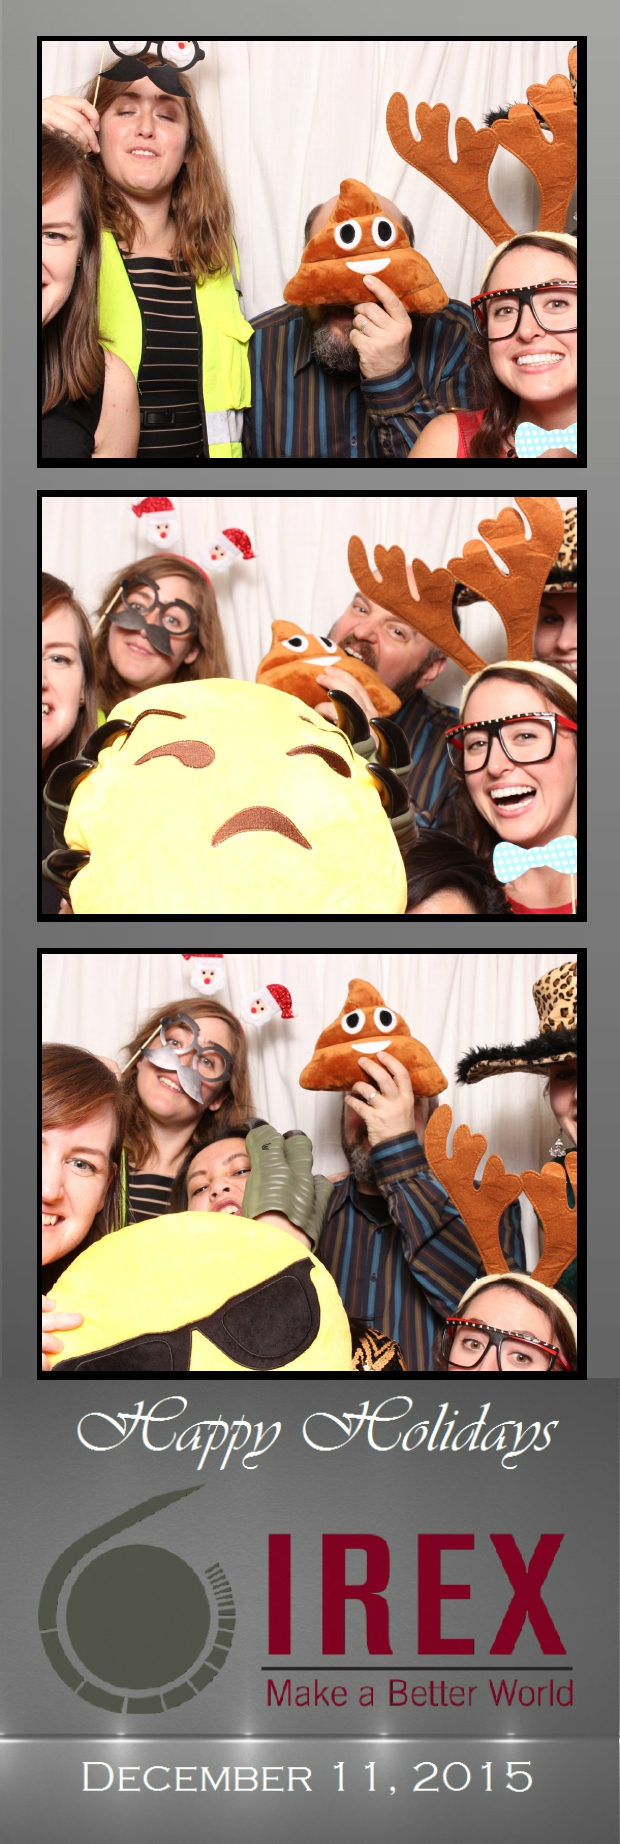 Guest House Events Photo Booth Strips IREX (50).jpg